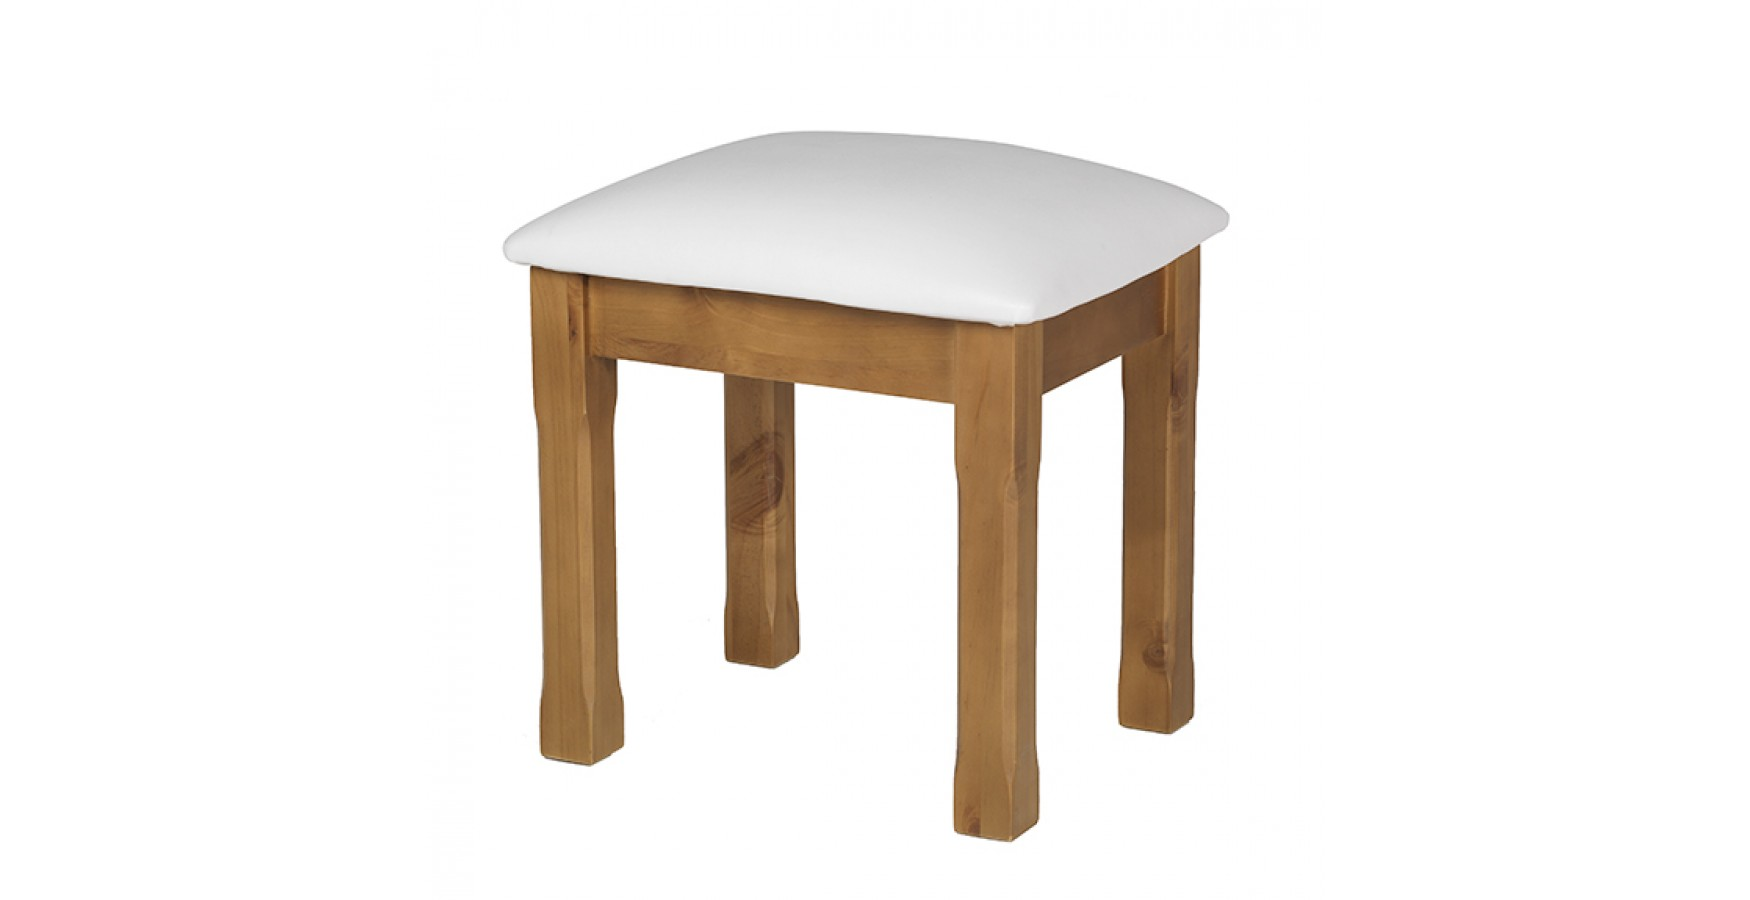 Country pine dressing table stool lifestyle furniture uk - Stool for vanity table ...